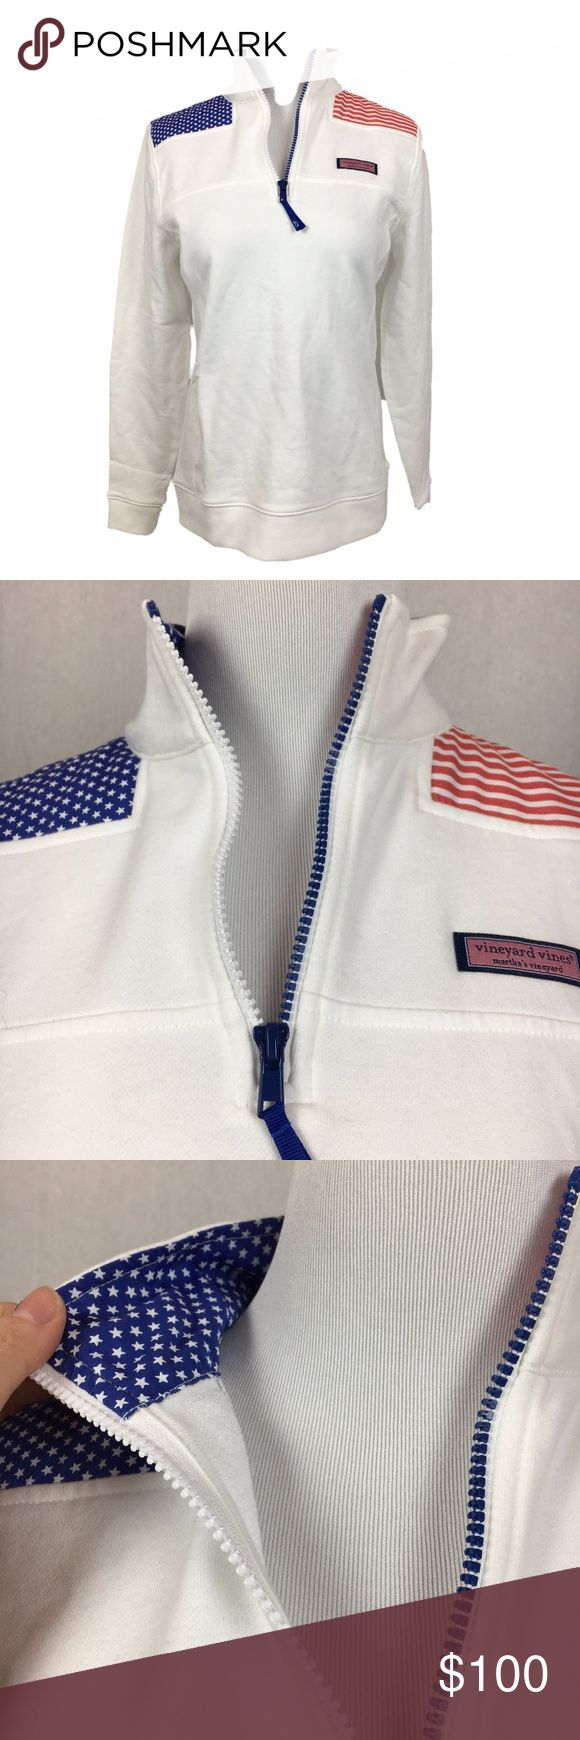 """Vineyard Vines American Flag Shep shirt white New with tags! vineyard vines women's American flag shep shirt in white cap. size XXS and XS available  inside collar is printed and zipper is white and blue  armpit to armpit-18"""" overall length-24""""  I085, 194  No trades Vineyard Vines Tops Sweatshirts & Hoodies"""